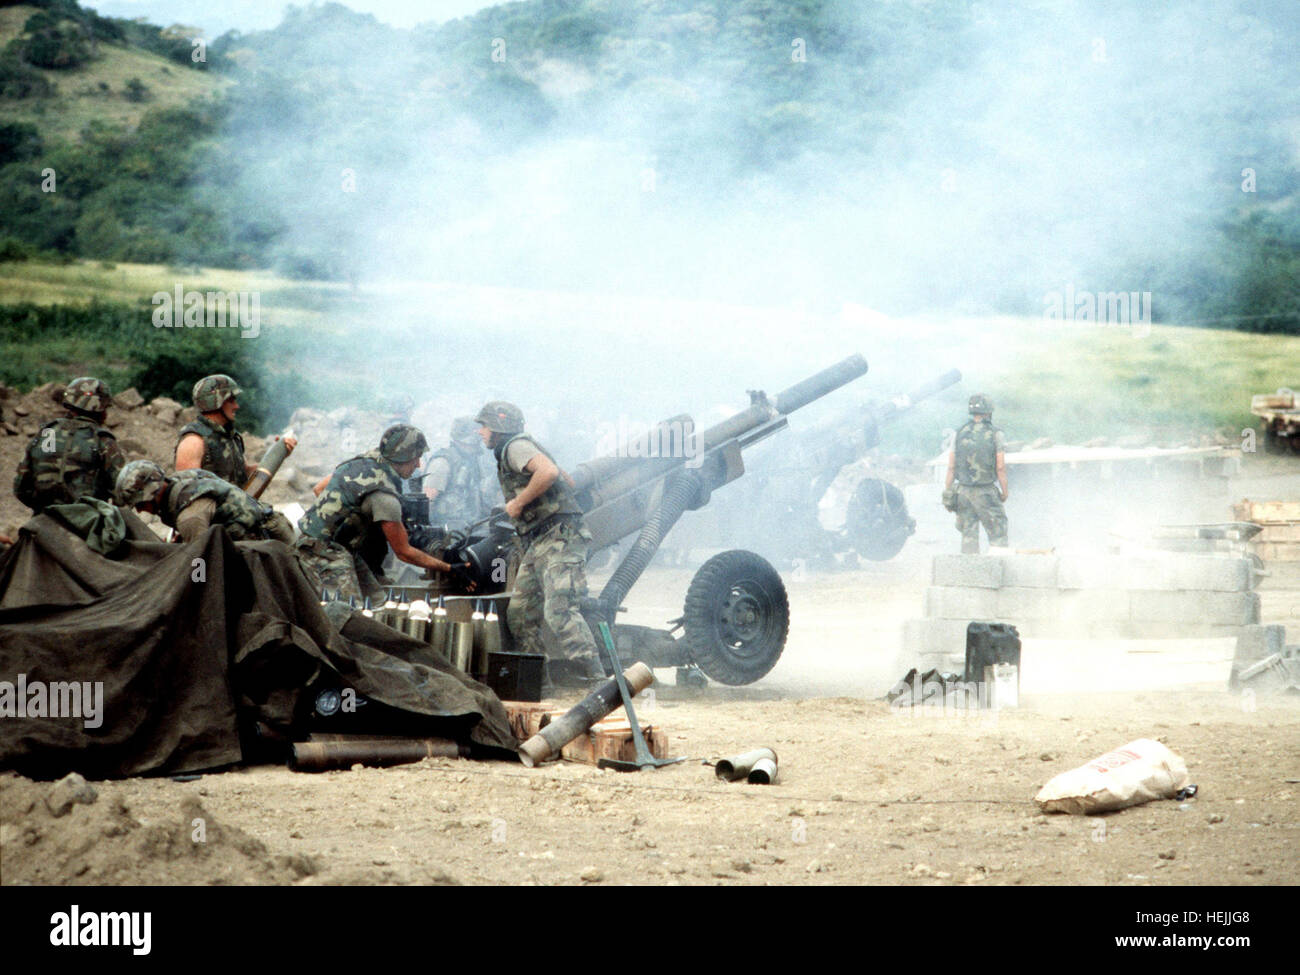 82nd Airborne artillery personnel load and fire M102 105 mm howitzers during Operation URGENT FURY. M102 howitzers - Stock Image